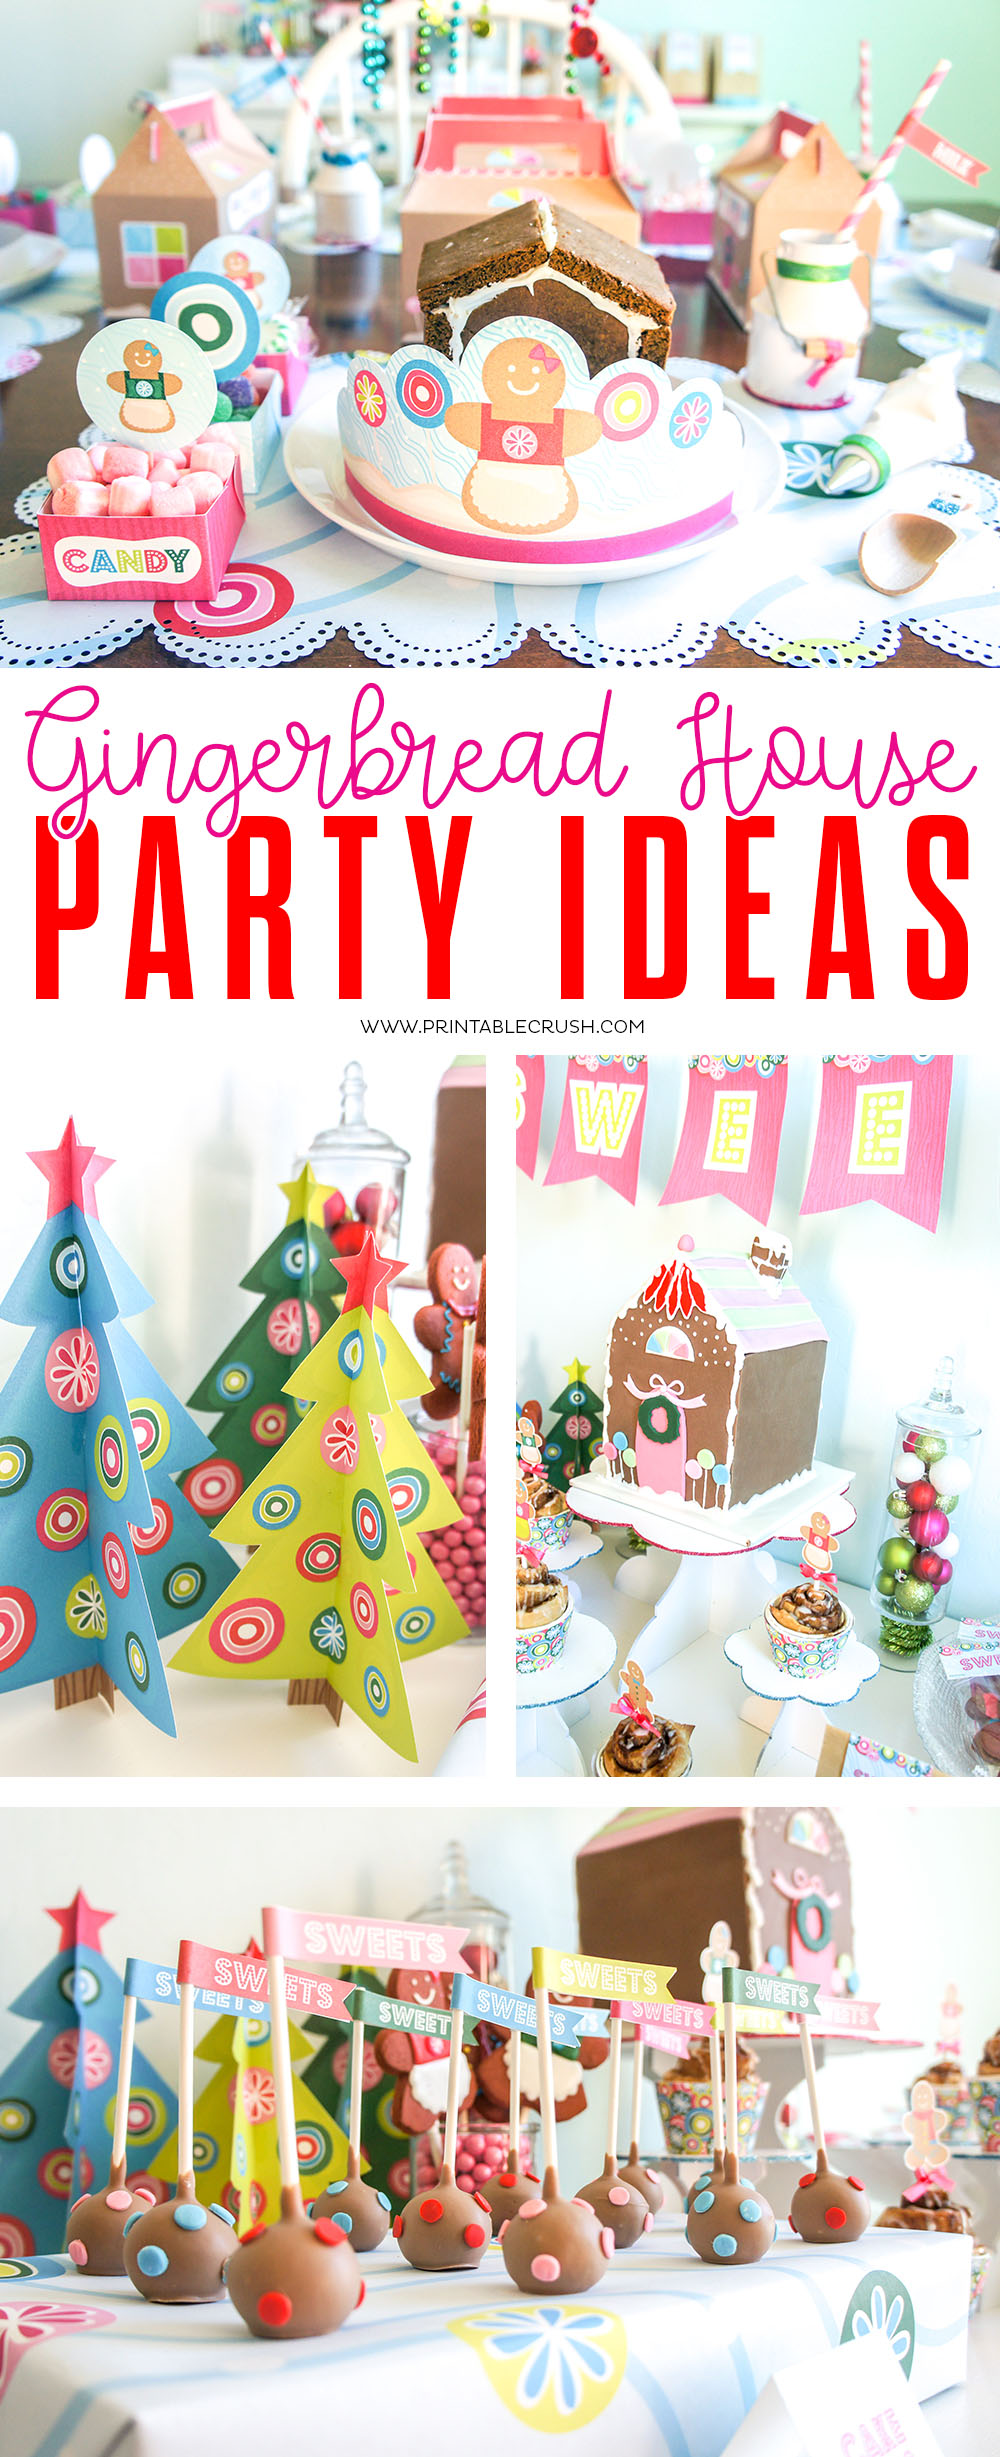 Celebrate the holidays with these Gingerbread House Party Ideas!